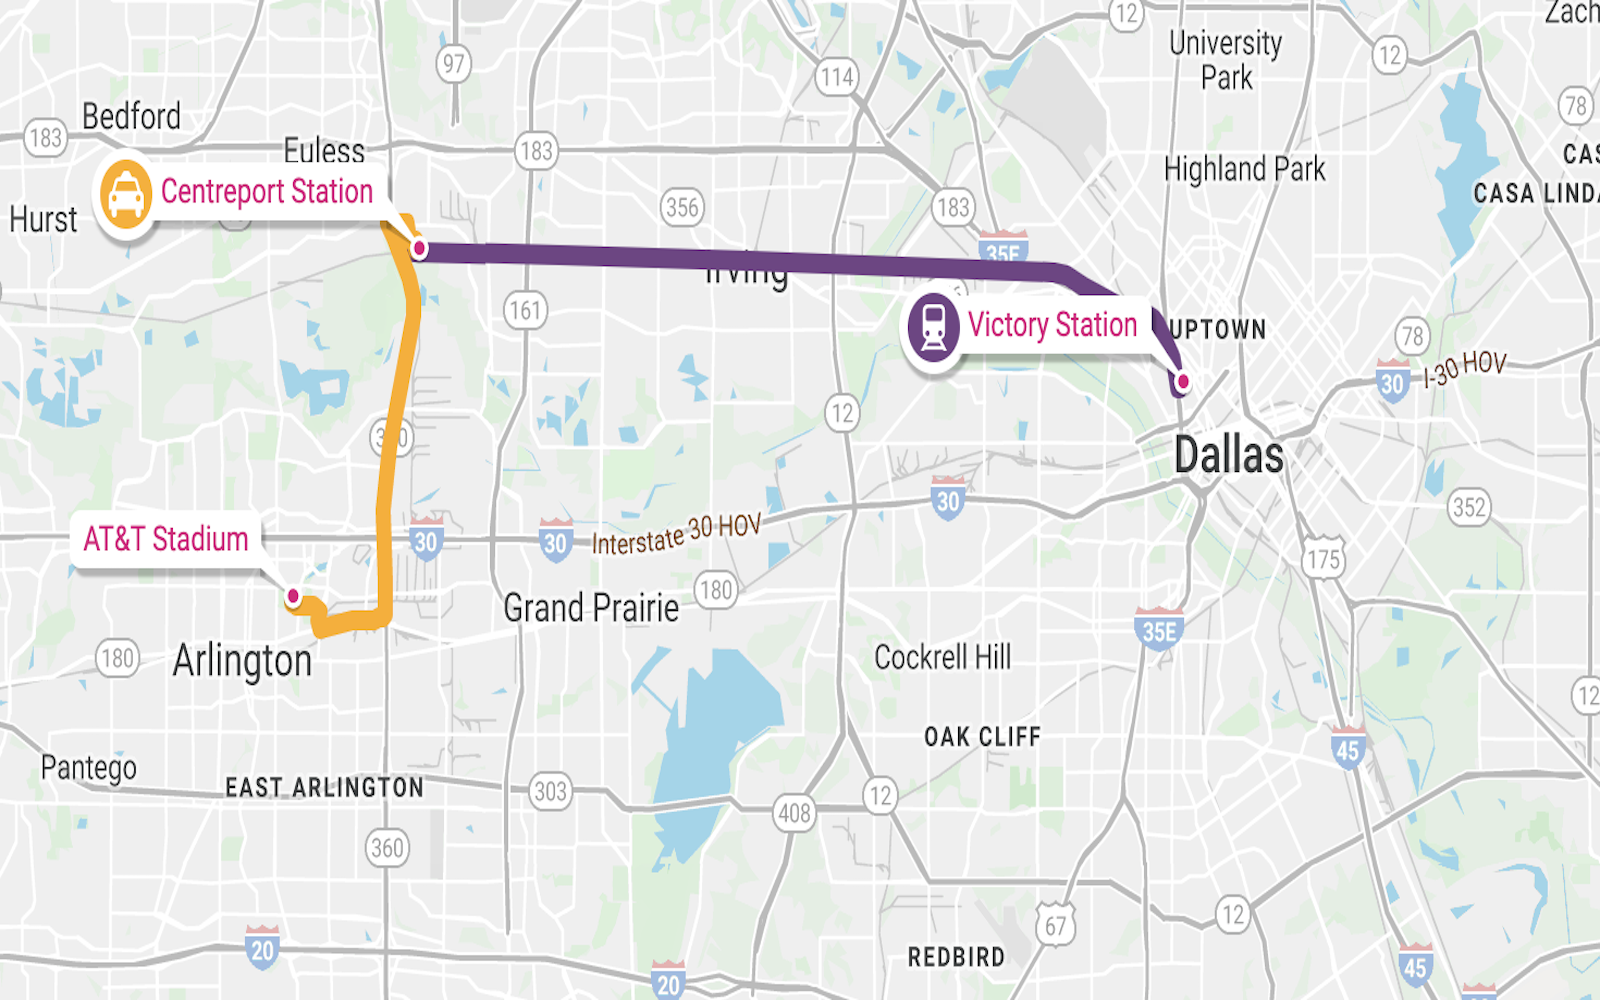 map - public transport to Arlington from Dallas, tx